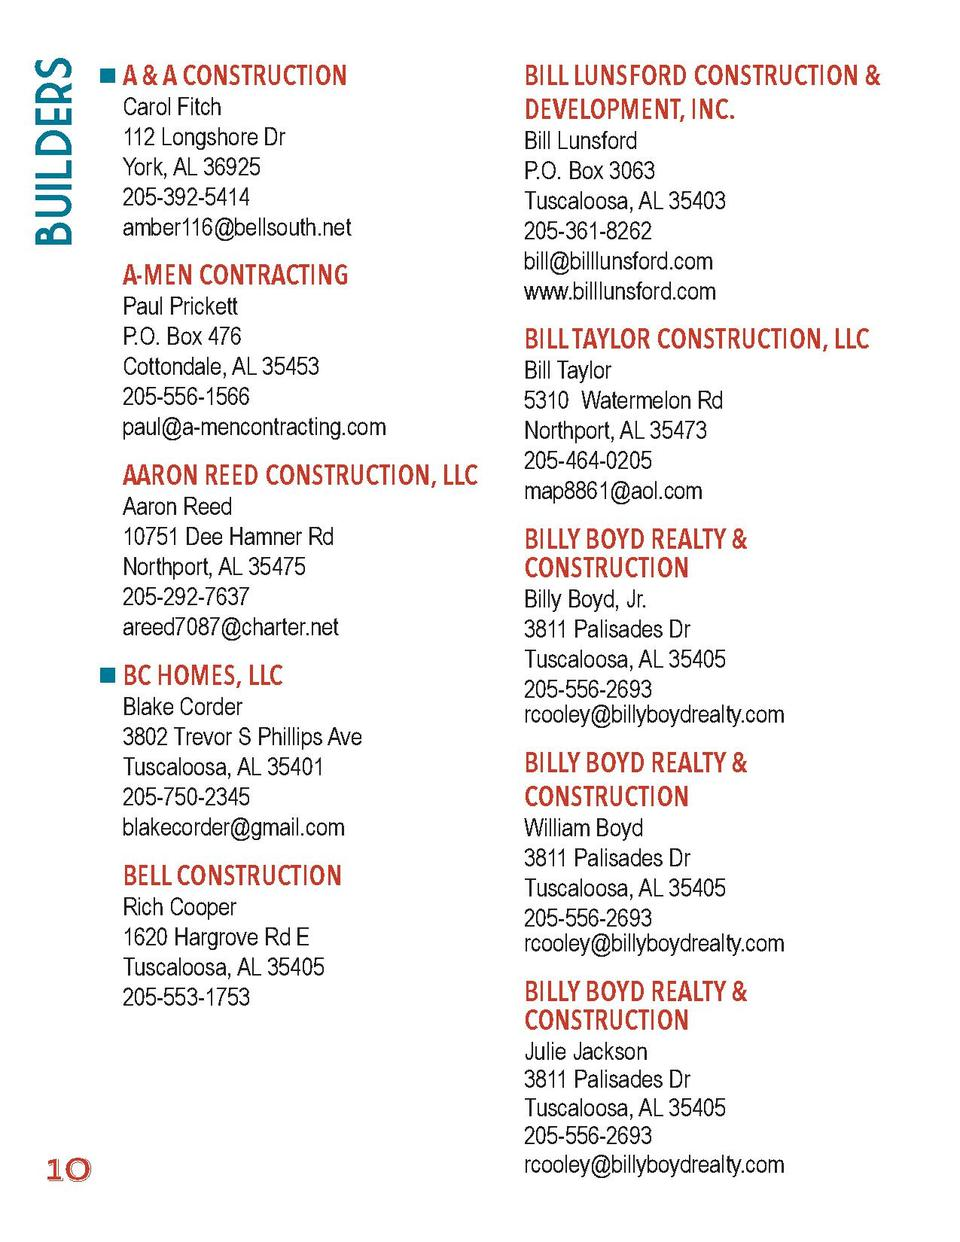 Builders  A   A CONSTRUCTION  Carol Fitch 112 Longshore Dr York, AL 36925 205-392-5414 amber116 bellsouth.net  A-MEN CONTR...